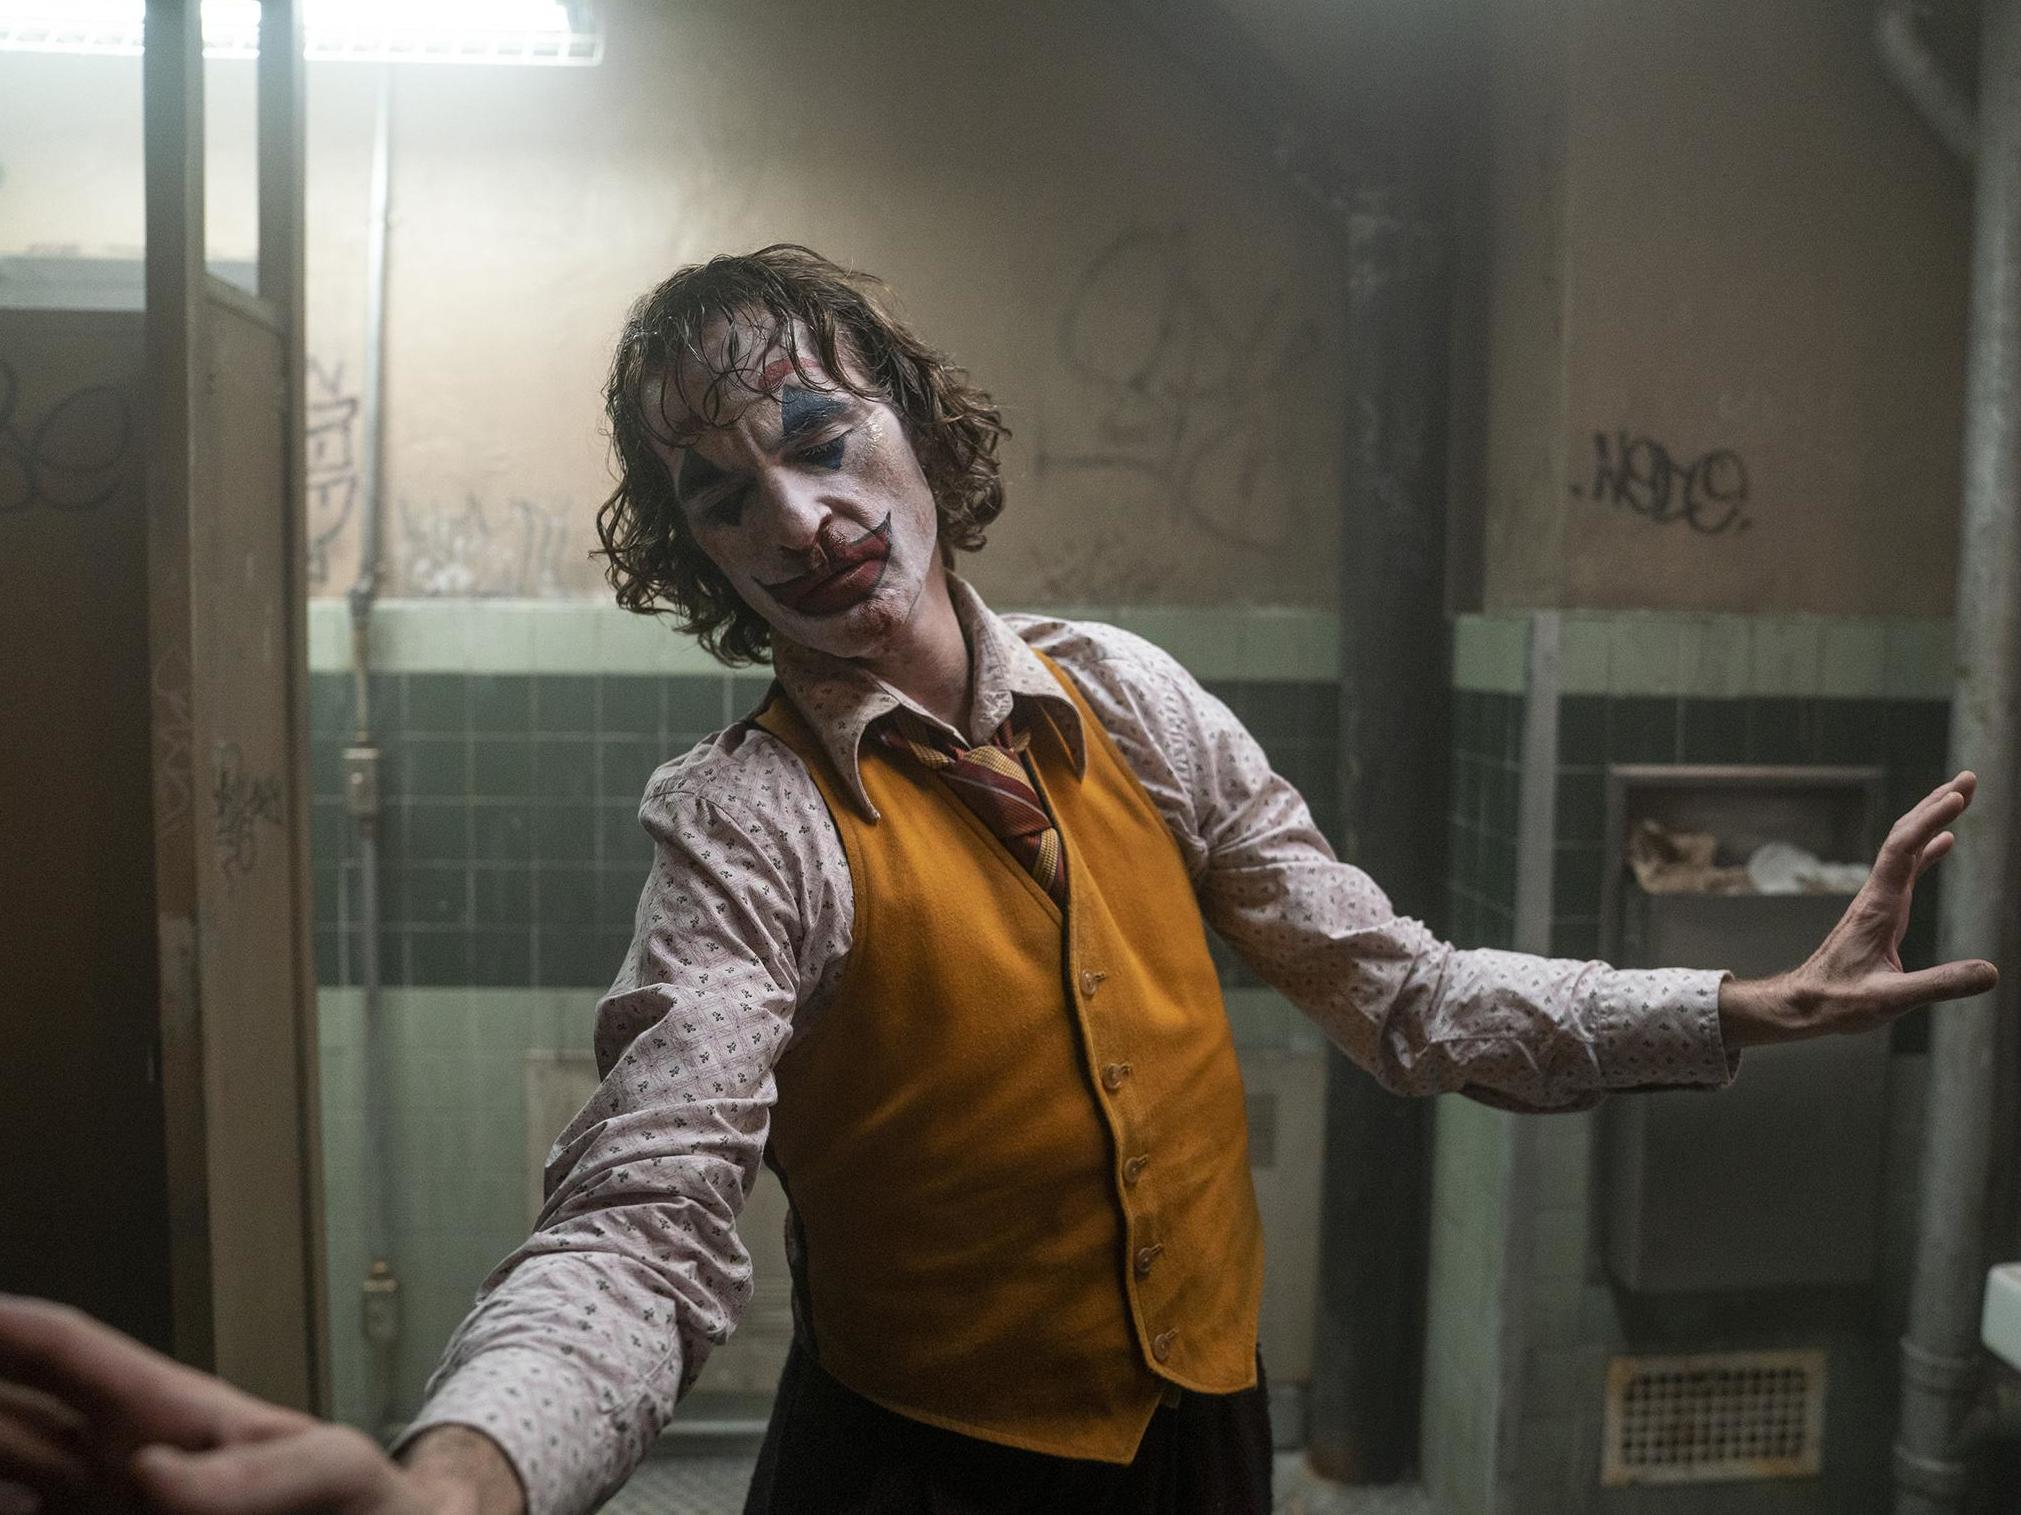 'Joker' would have been a whole other story were the central character not white